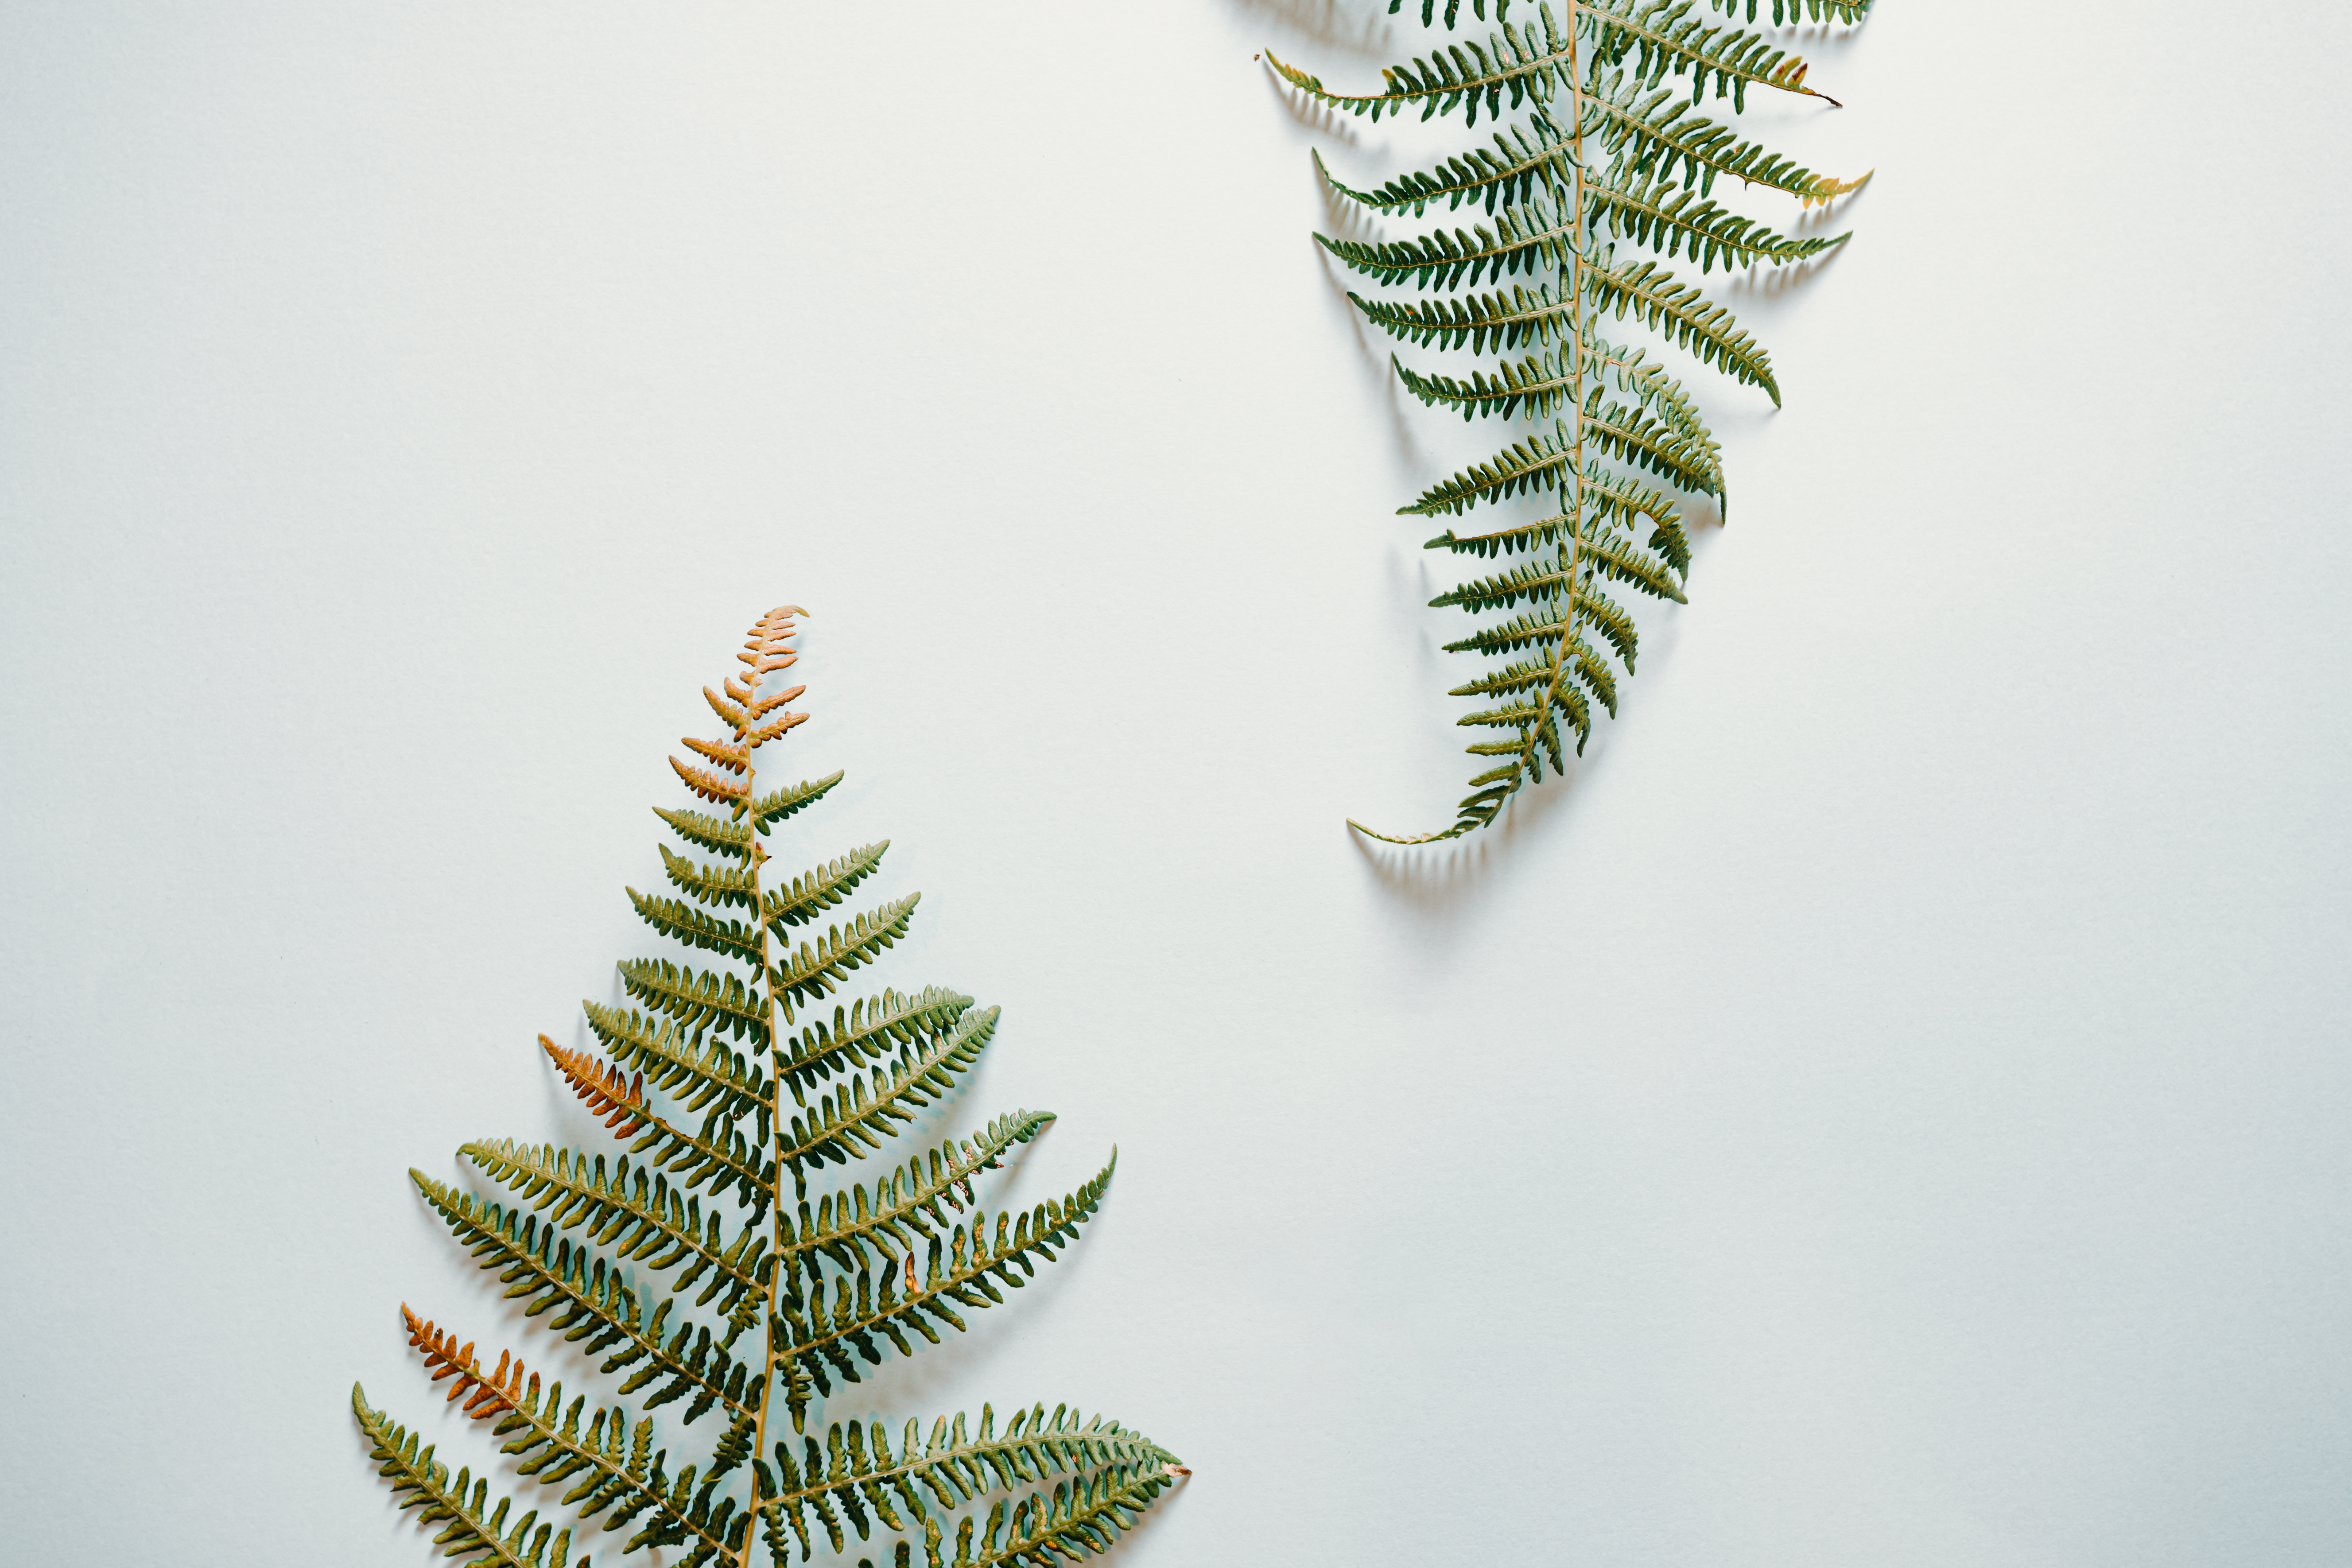 Fern leaves over a white background